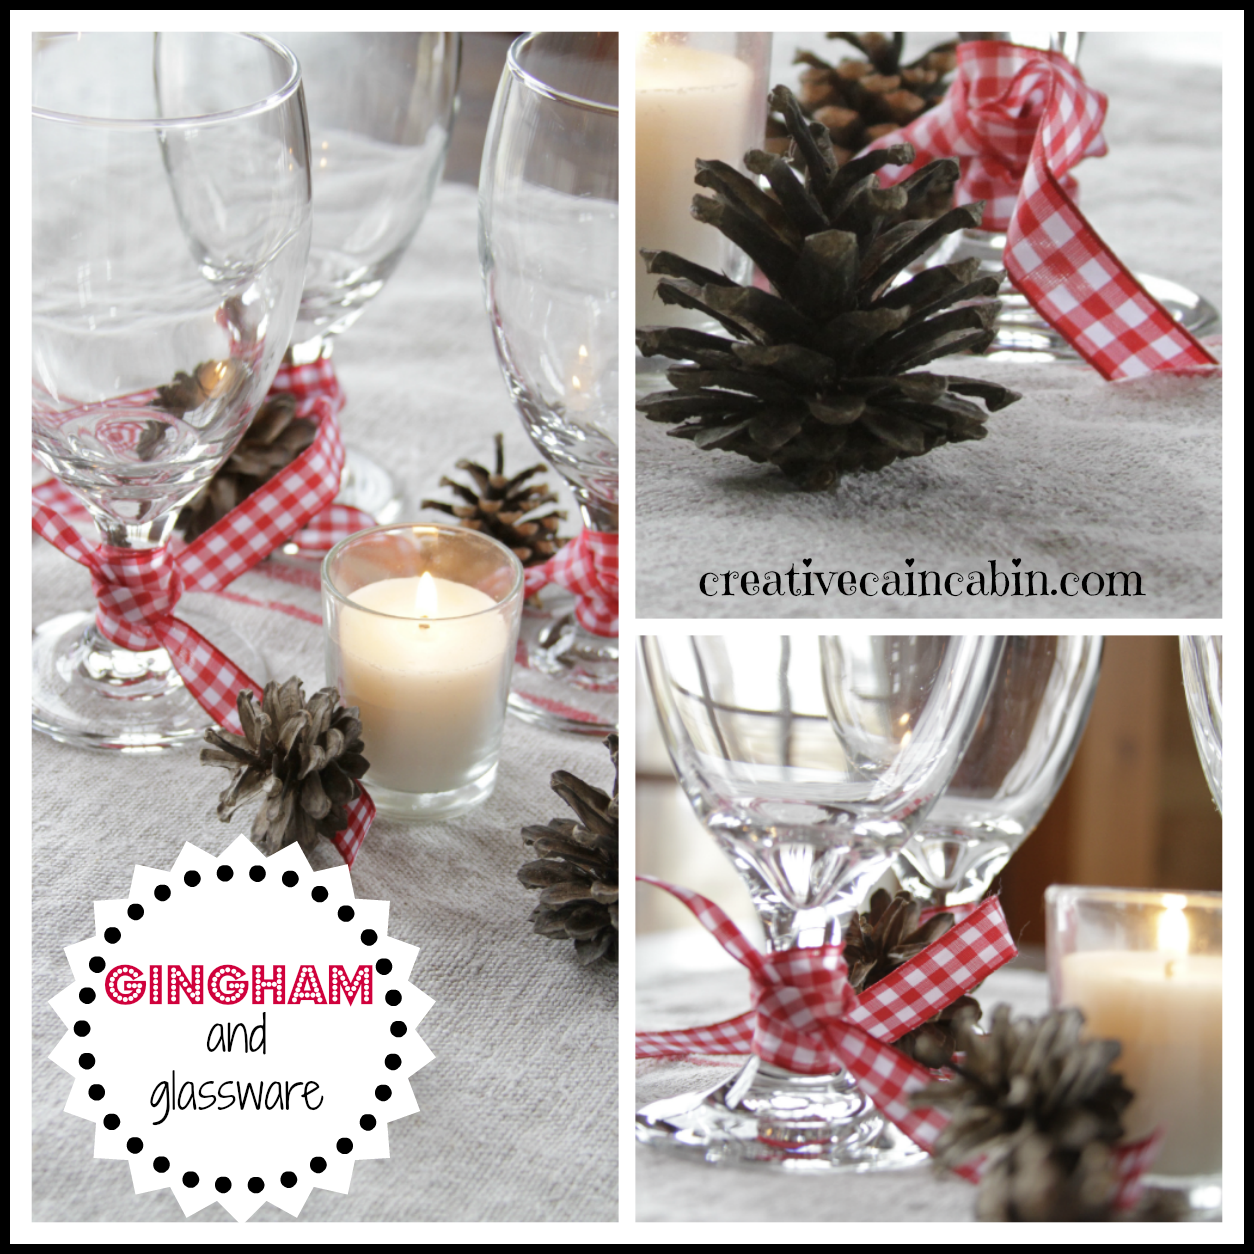 Uncategorized Decorate For Christmas On A Budget christmas decorating on a budget idea 1 creative pine cone and 1